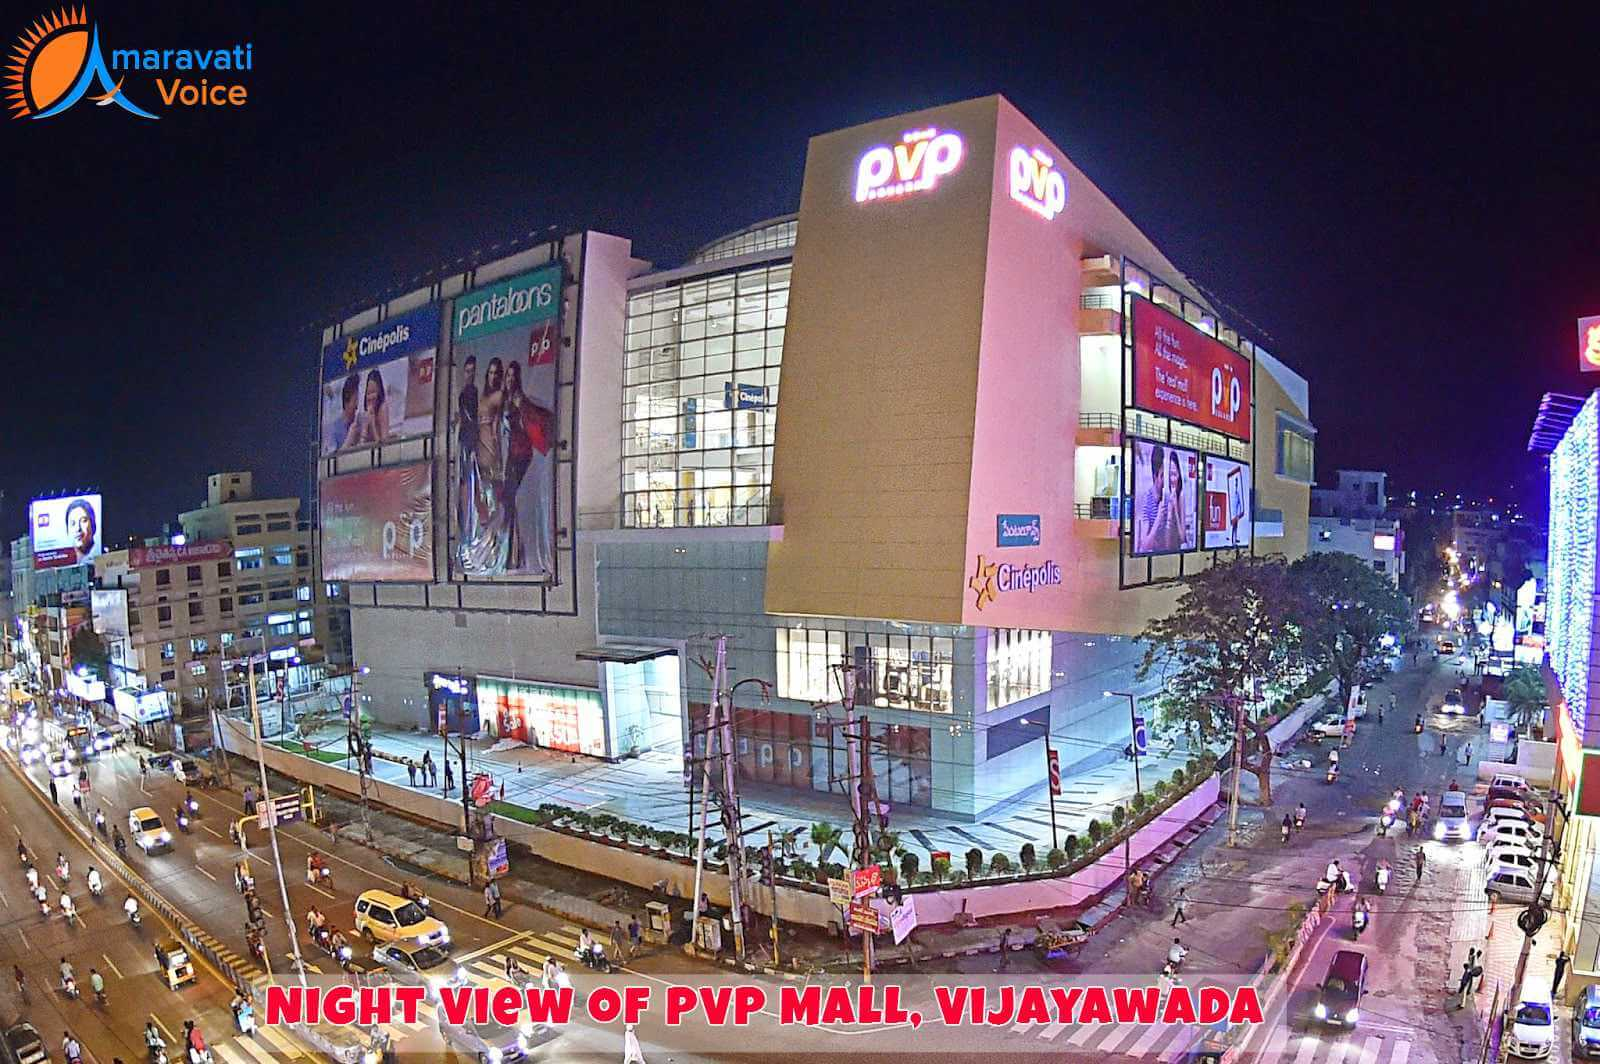 PVP Mall Vijayawada